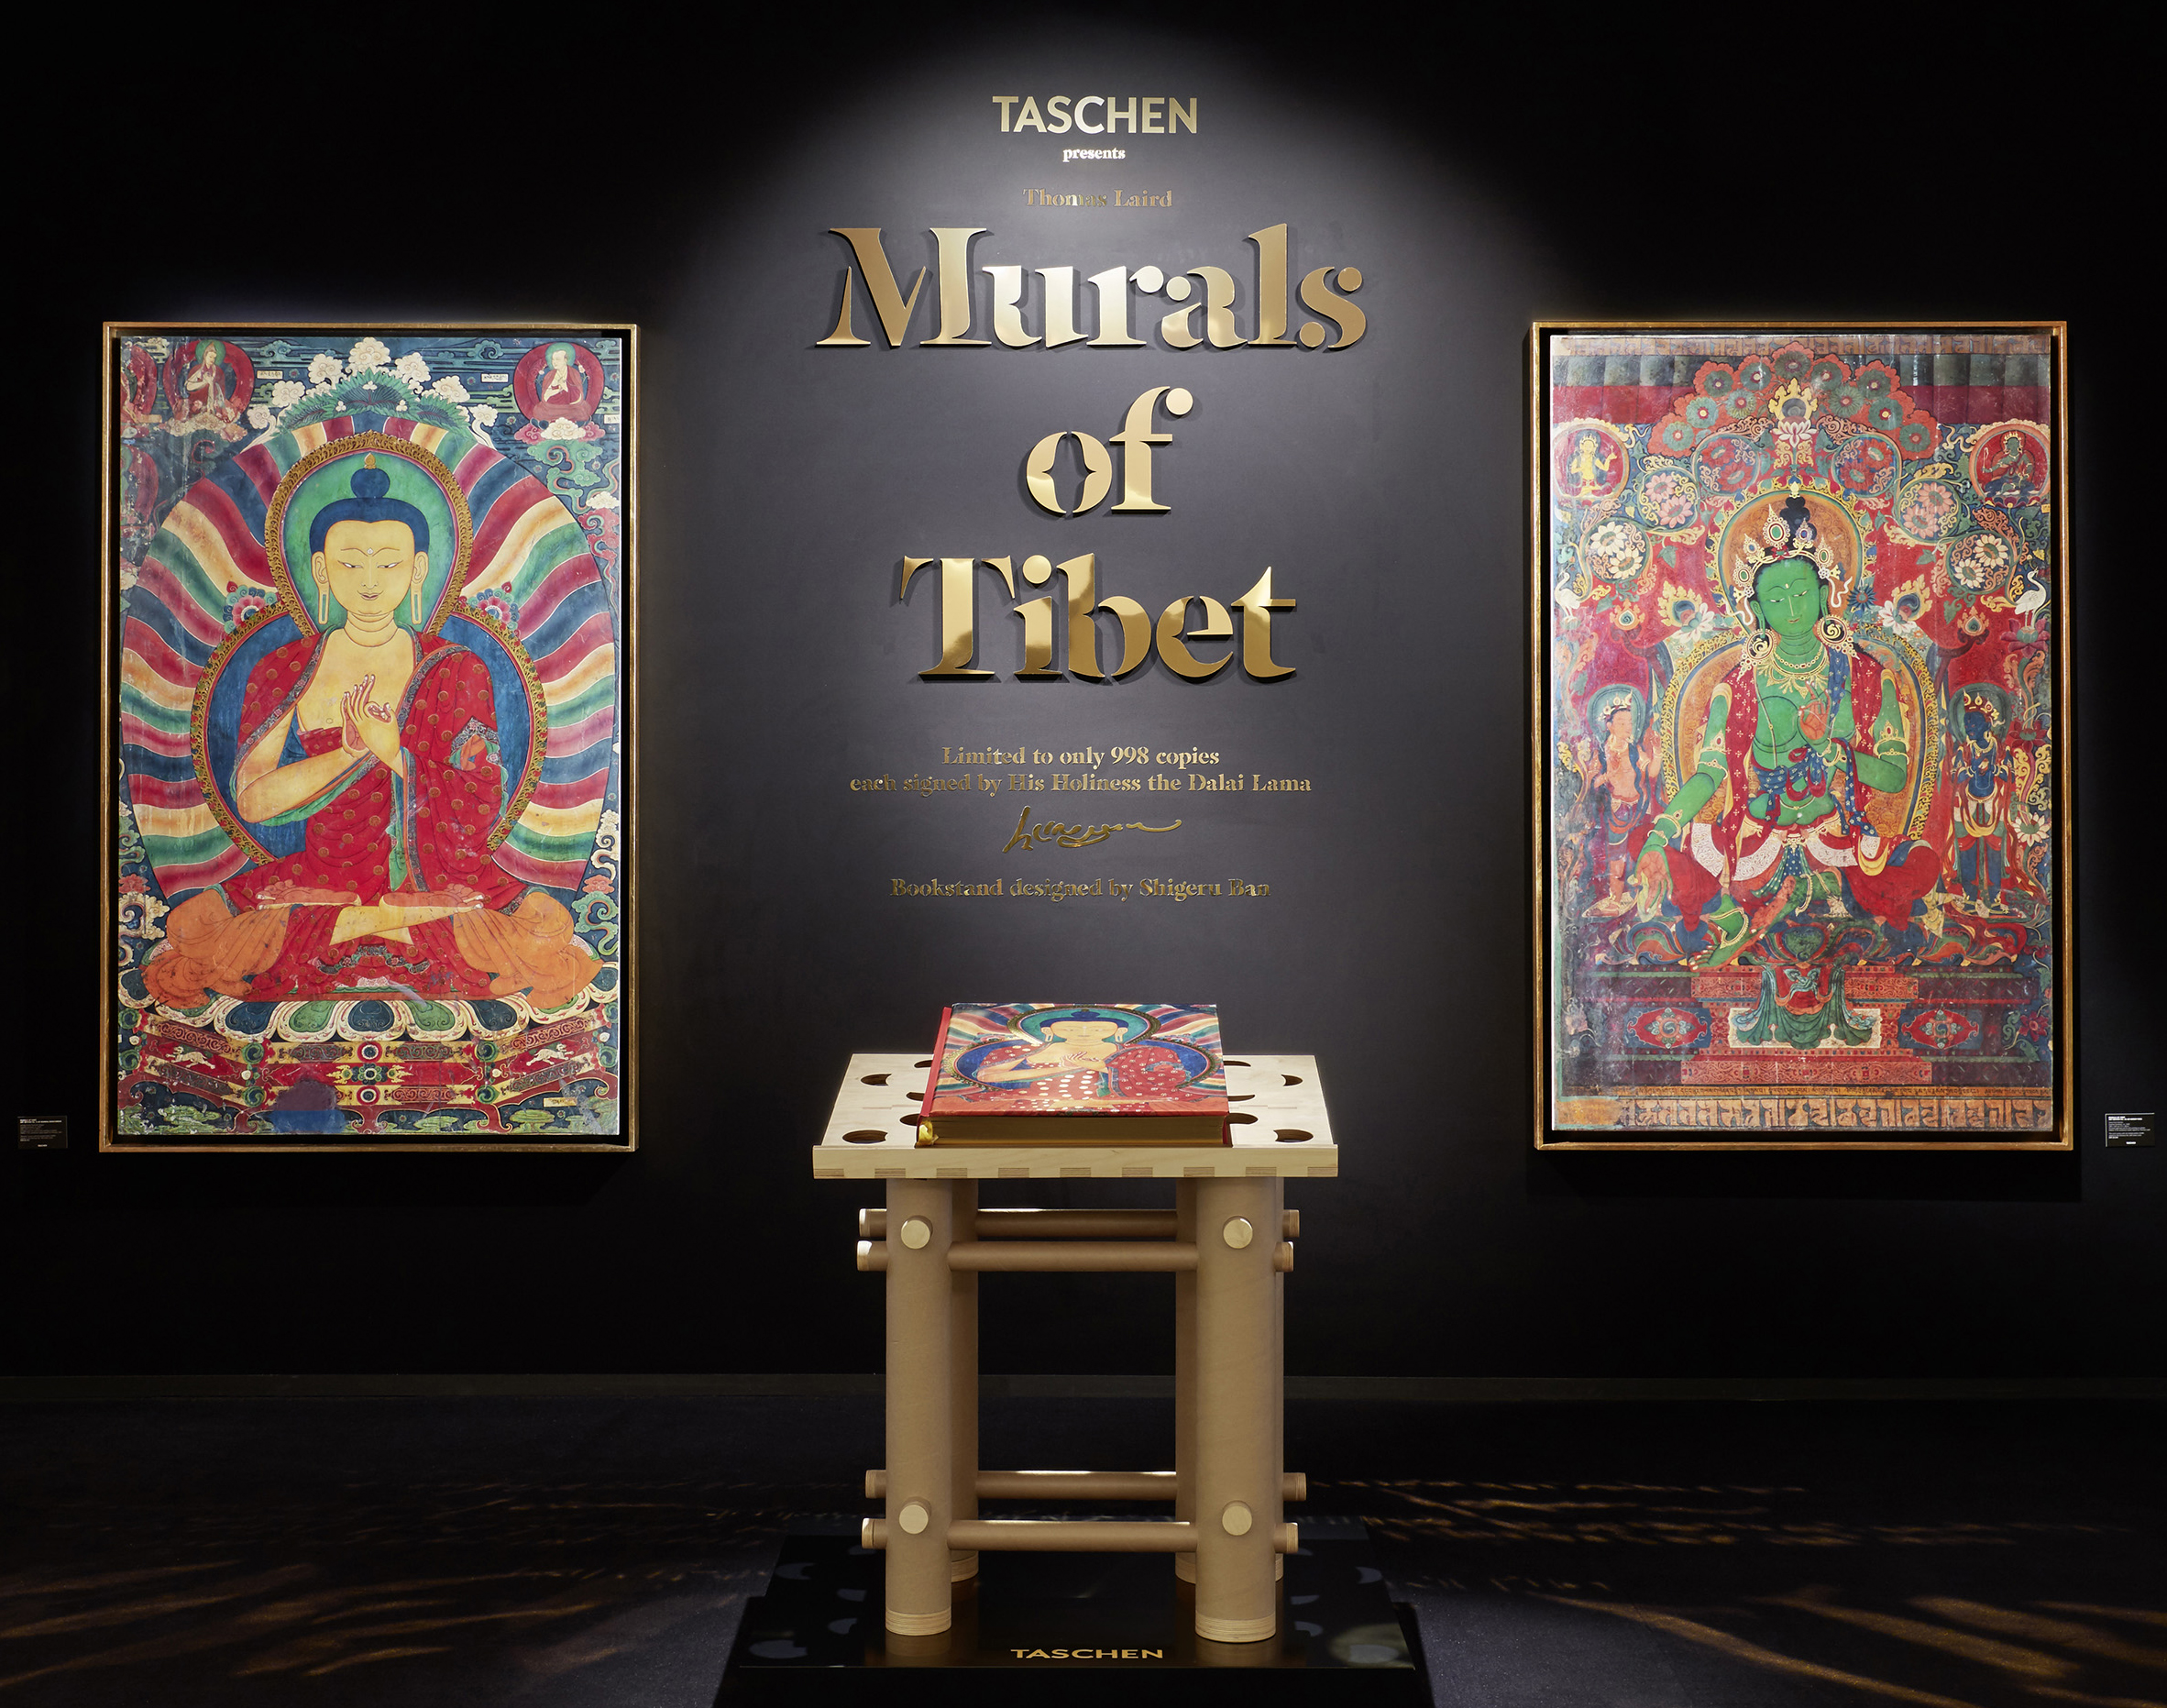 (World premiere unveiling at TEFAF, Maastricht).